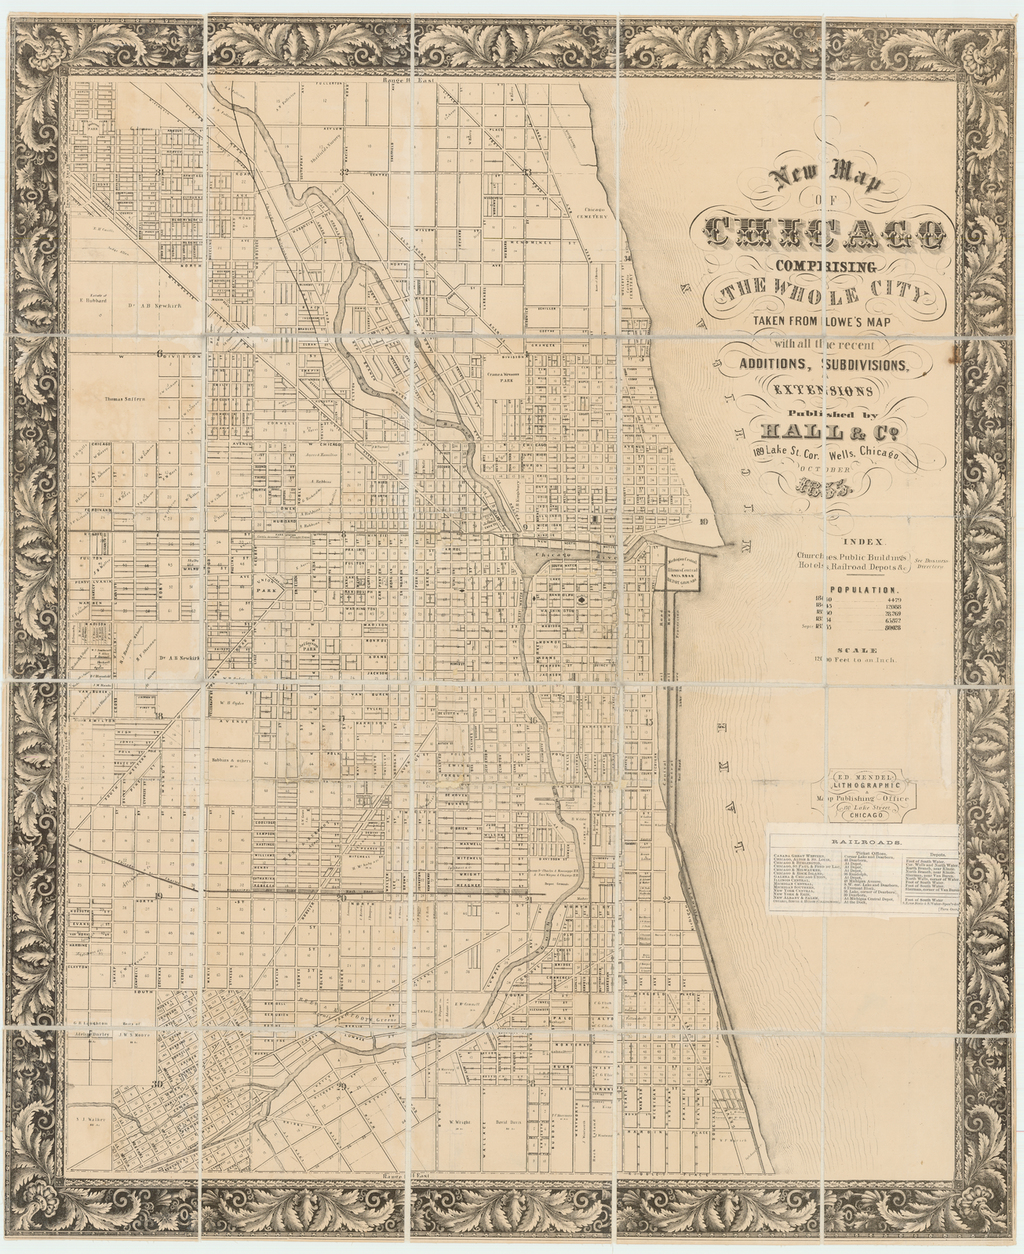 Chicago Map By Hall & Co.